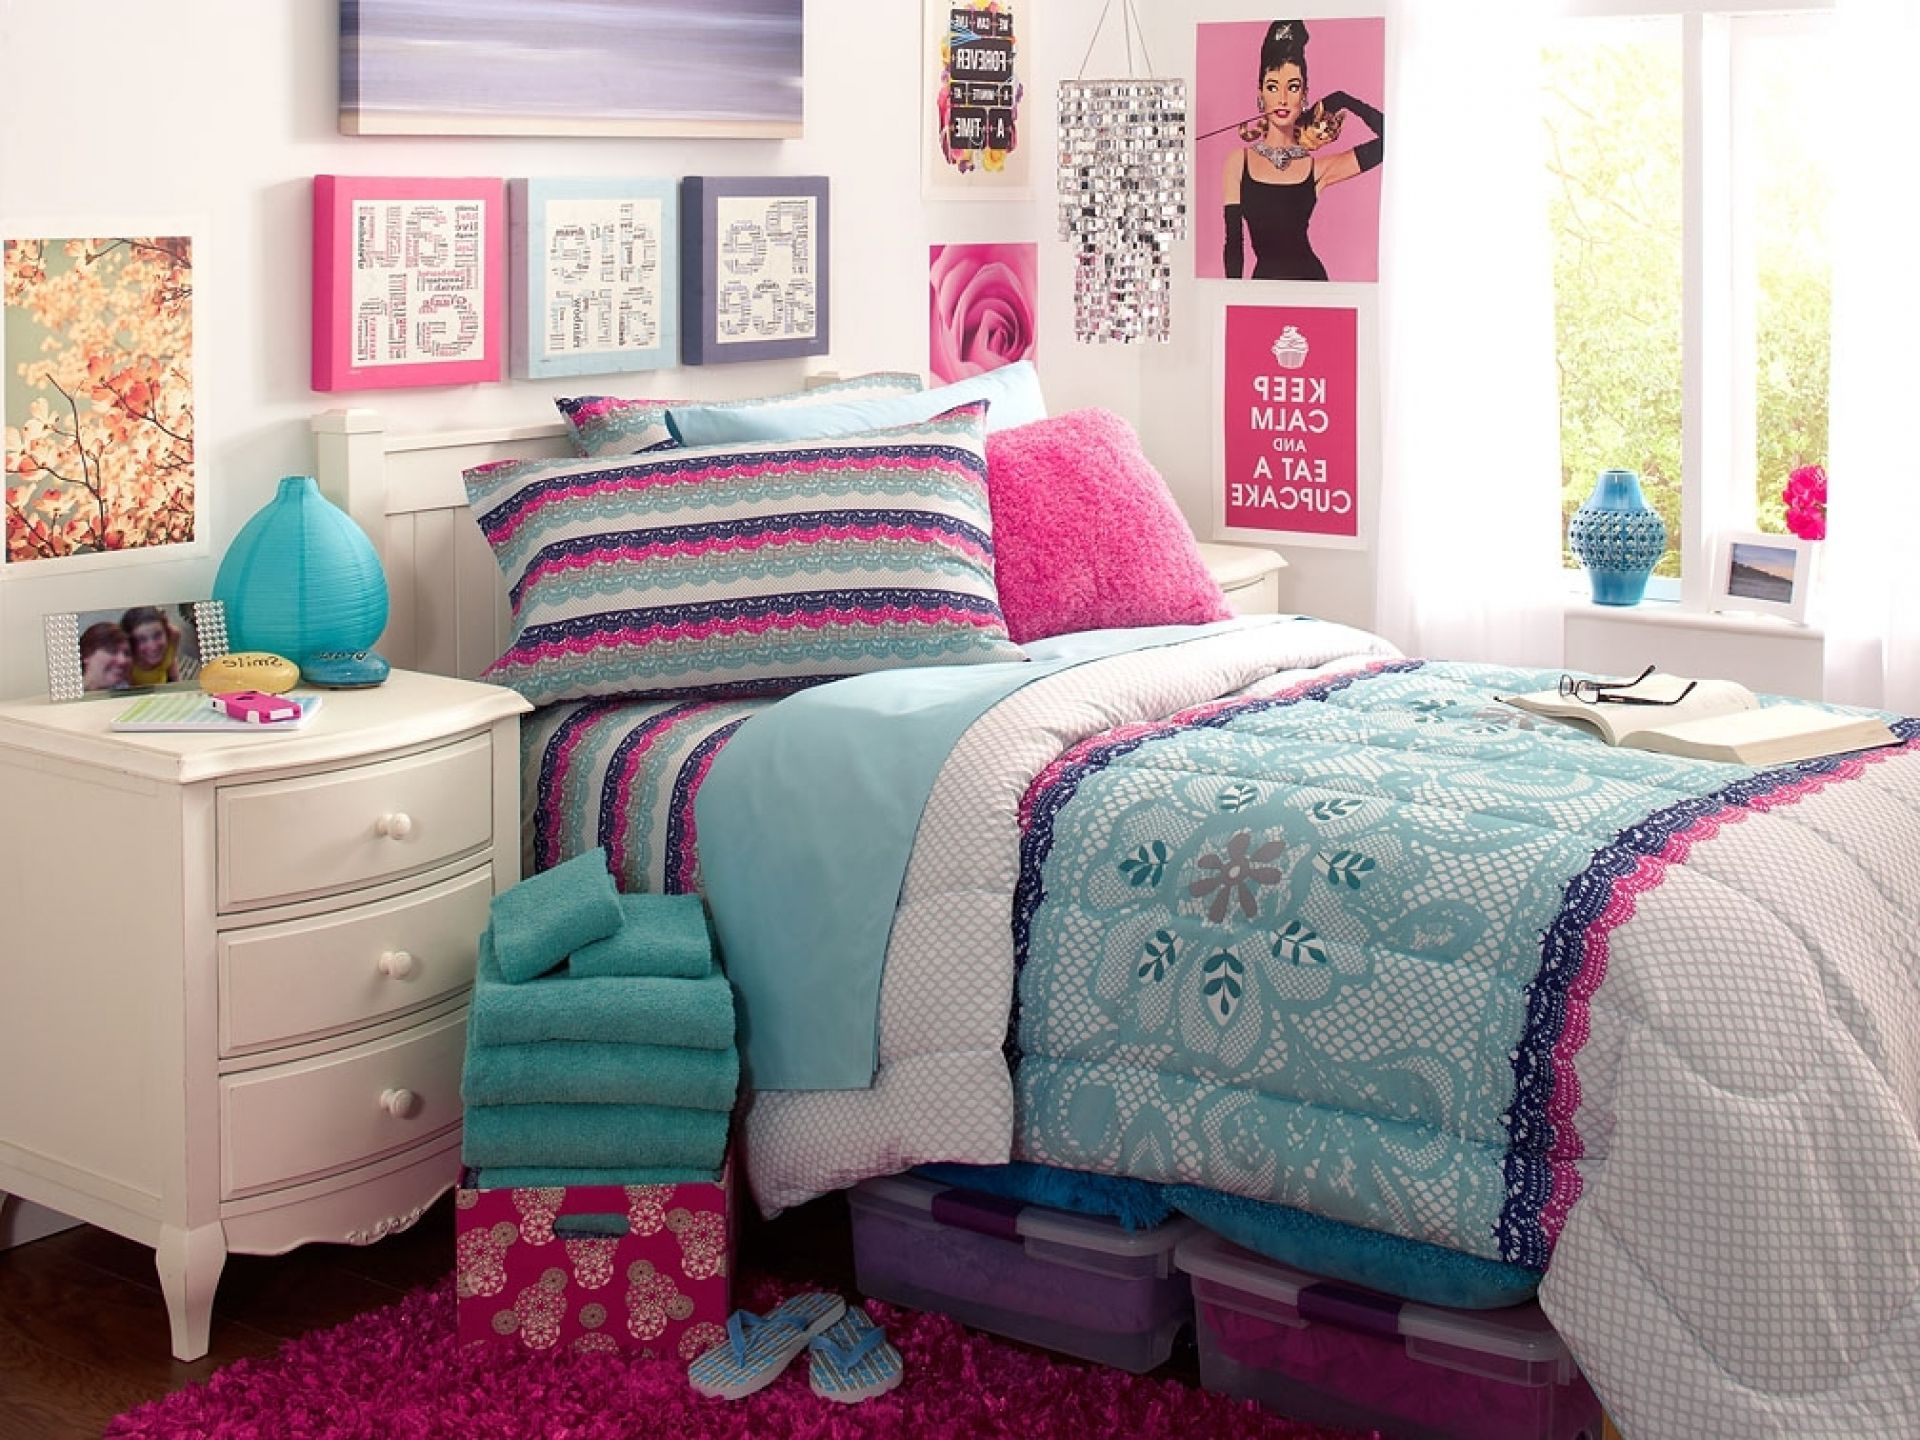 Clean White Nightstands and Lovely Bed Used for Cute Teen Bedroom Decor with Pink Carpet Rug